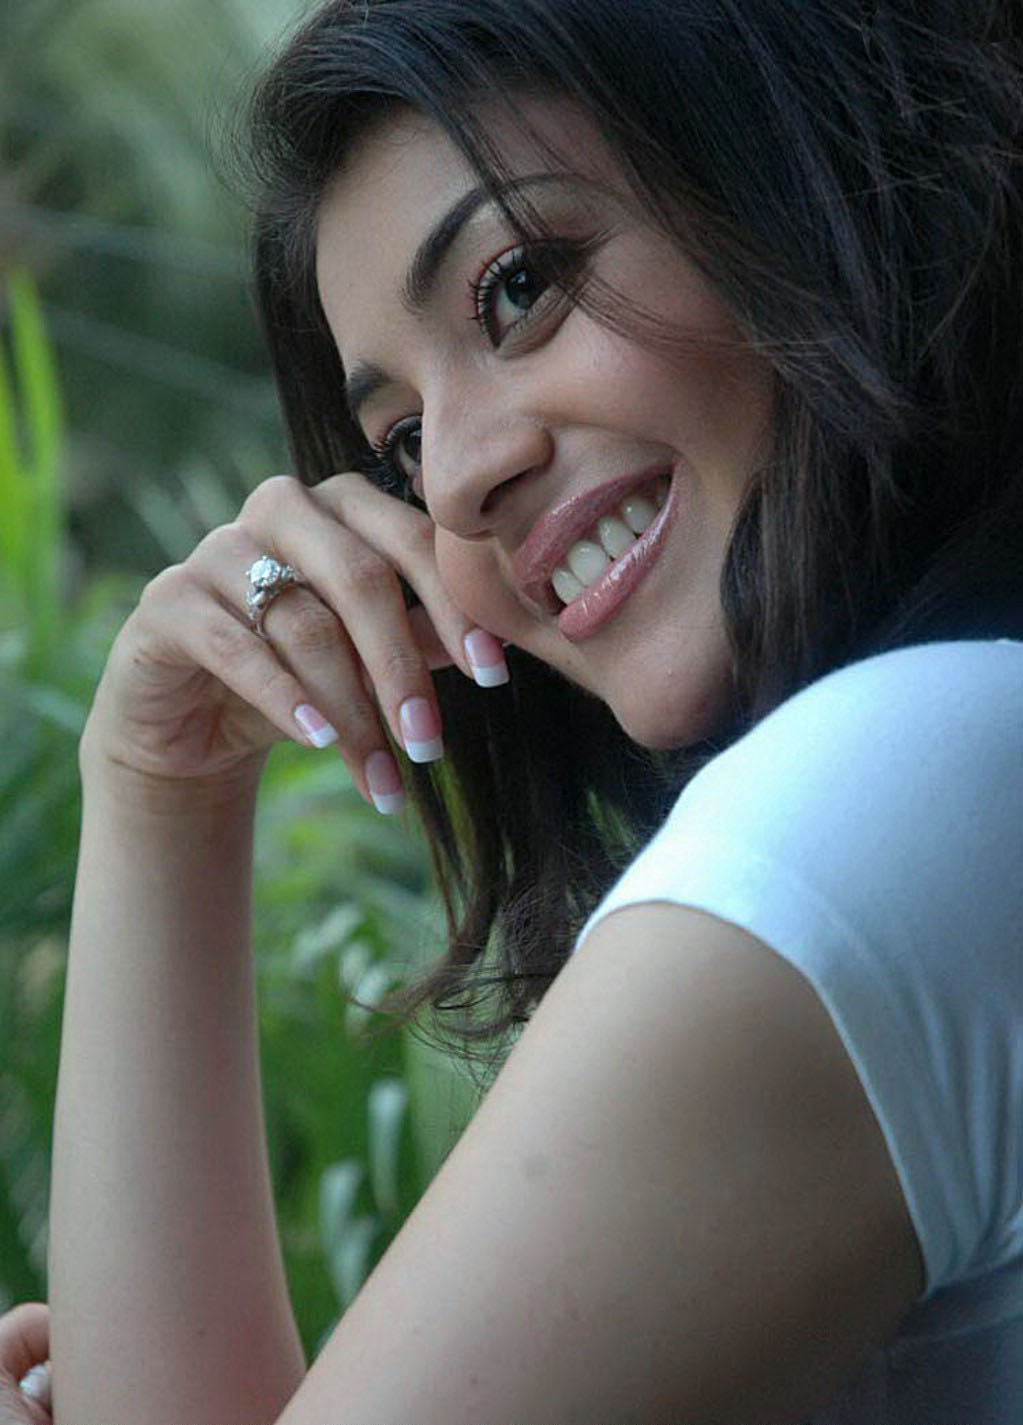 Tollywood actress hot pics november 2010 - Maison rustique adorable tennessee nov ...